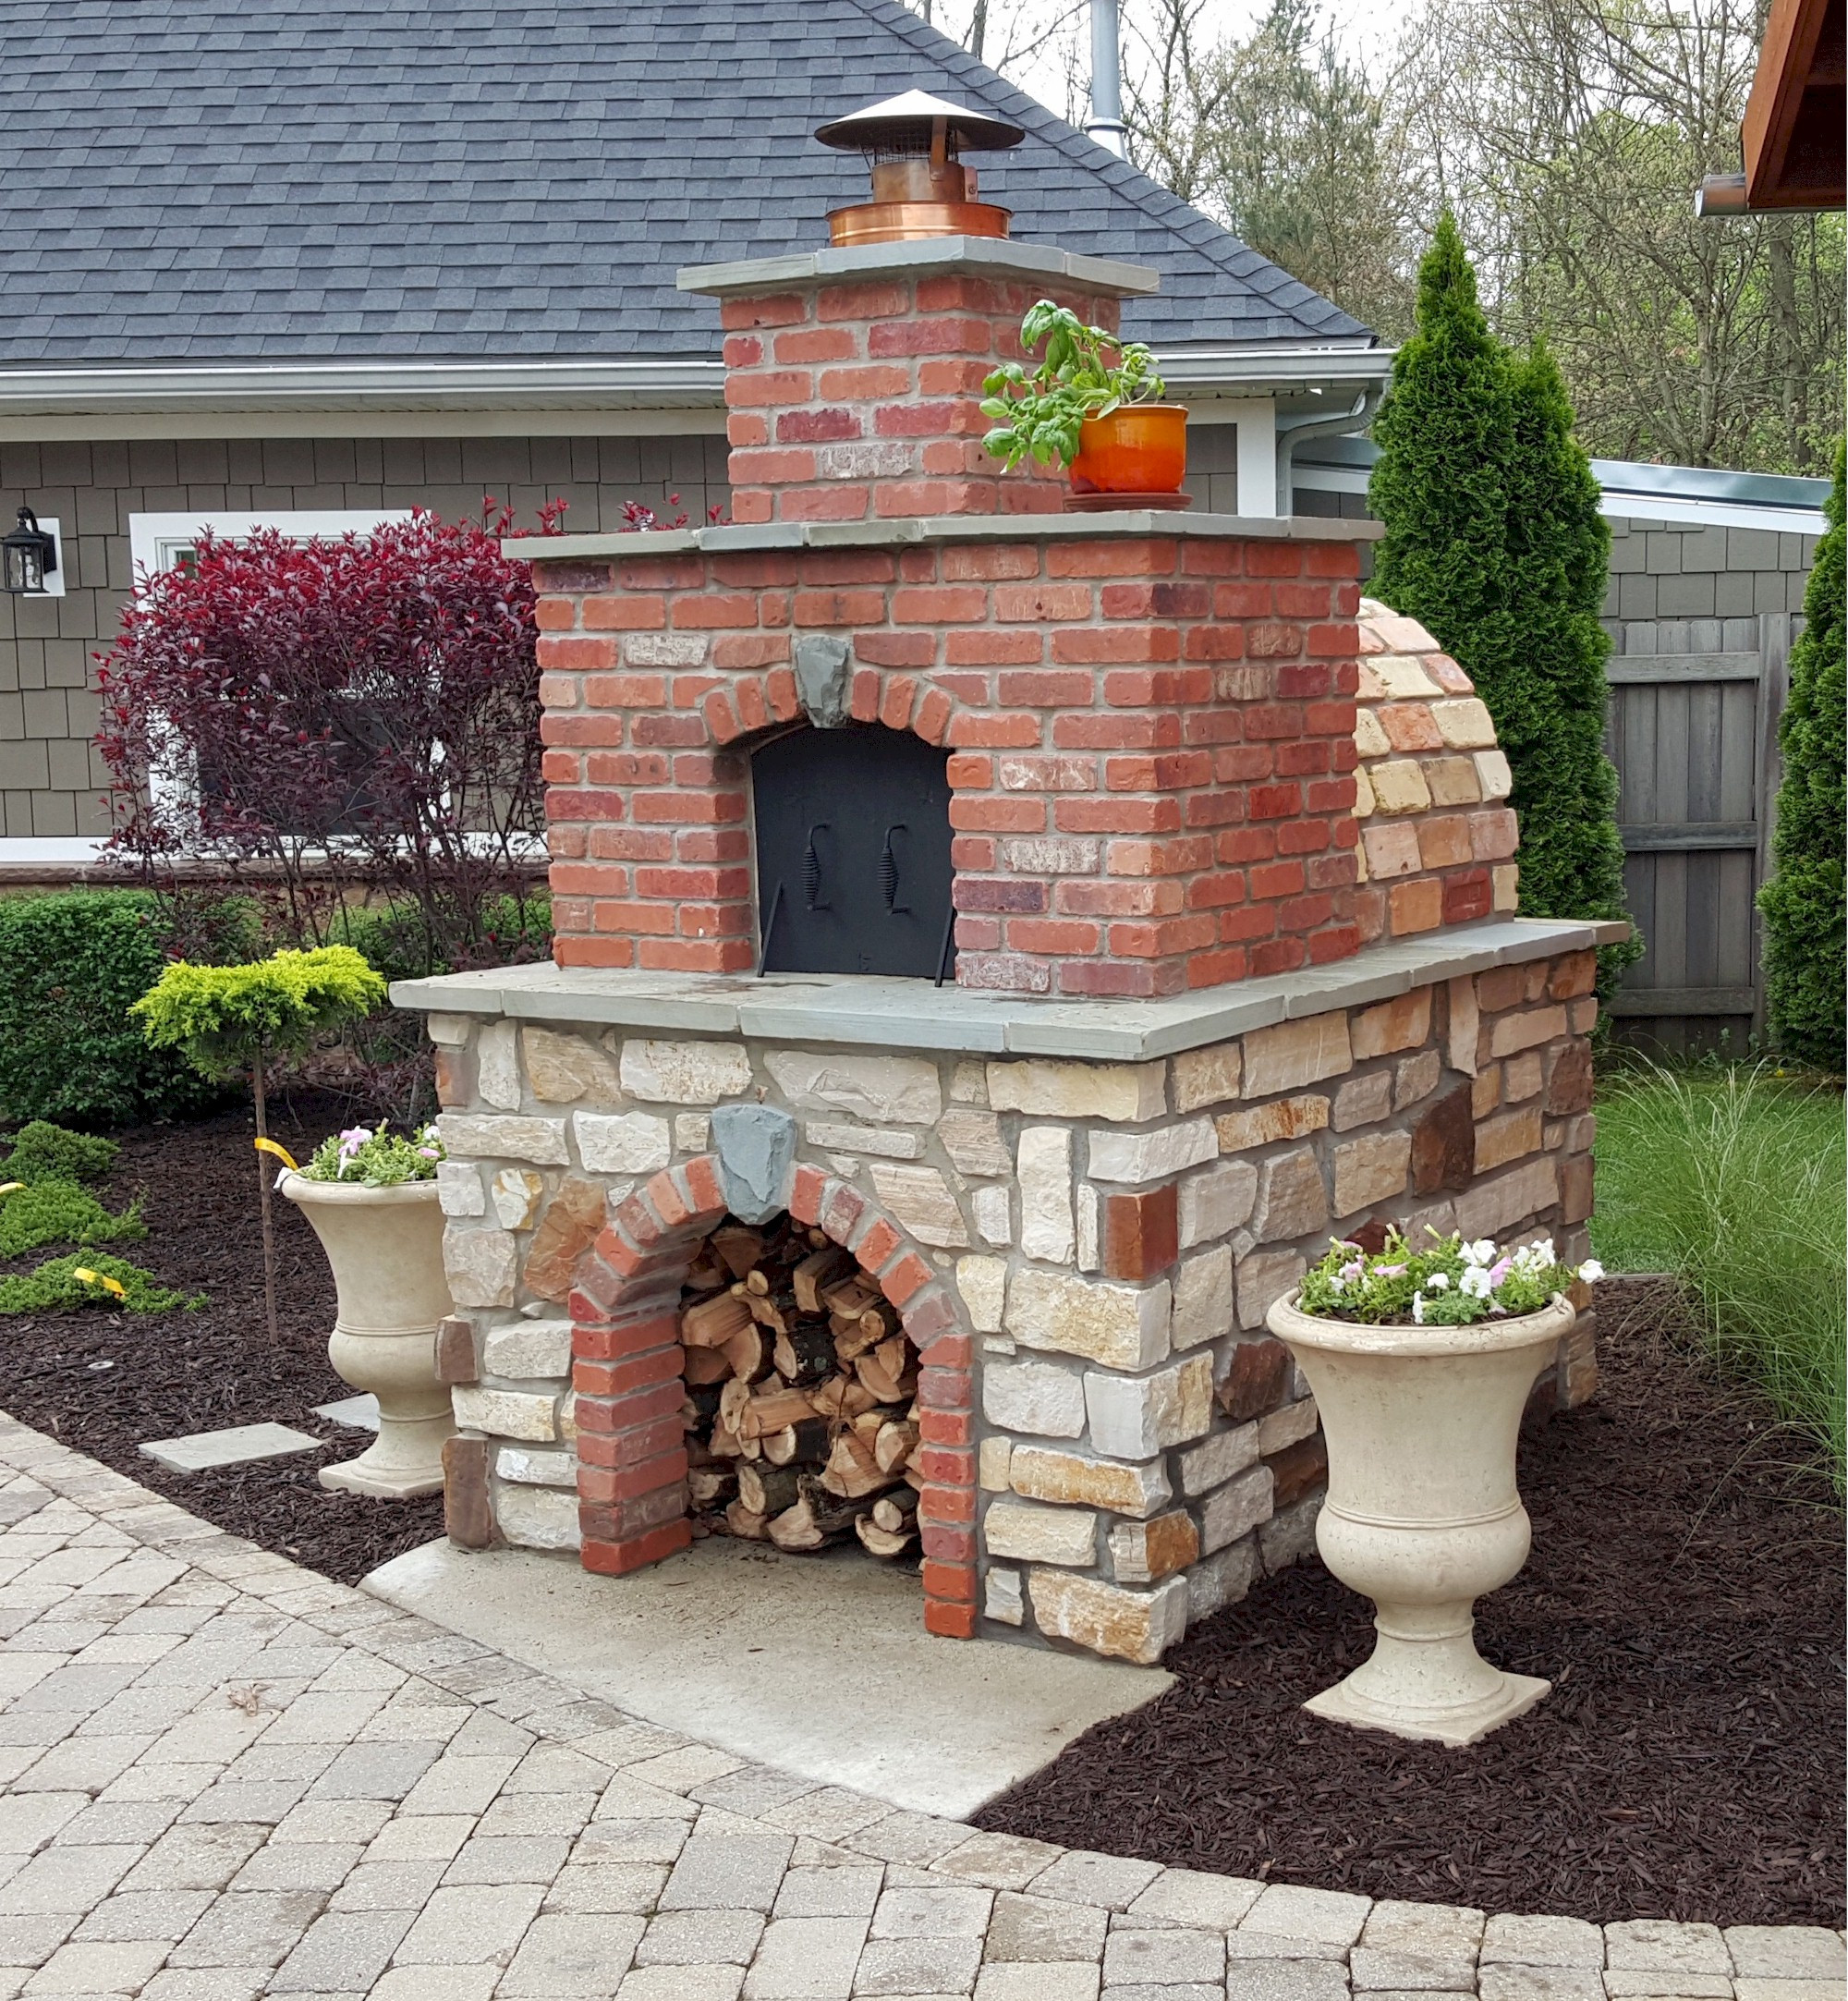 DIY Outdoor Oven  DIY Wood Fired Outdoor Brick Pizza Ovens Are Not ly Easy